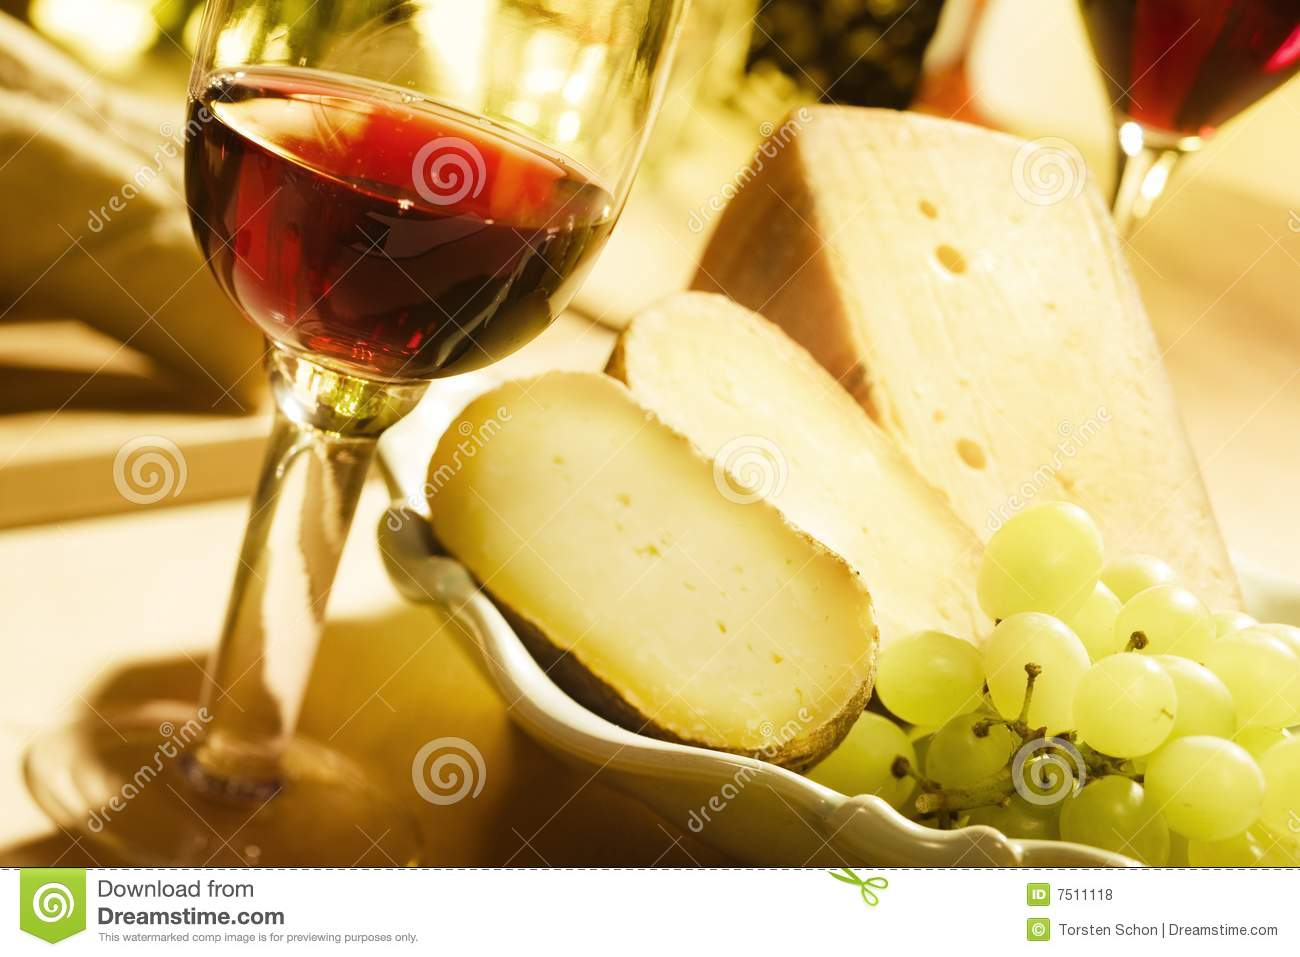 Wine and cheese0